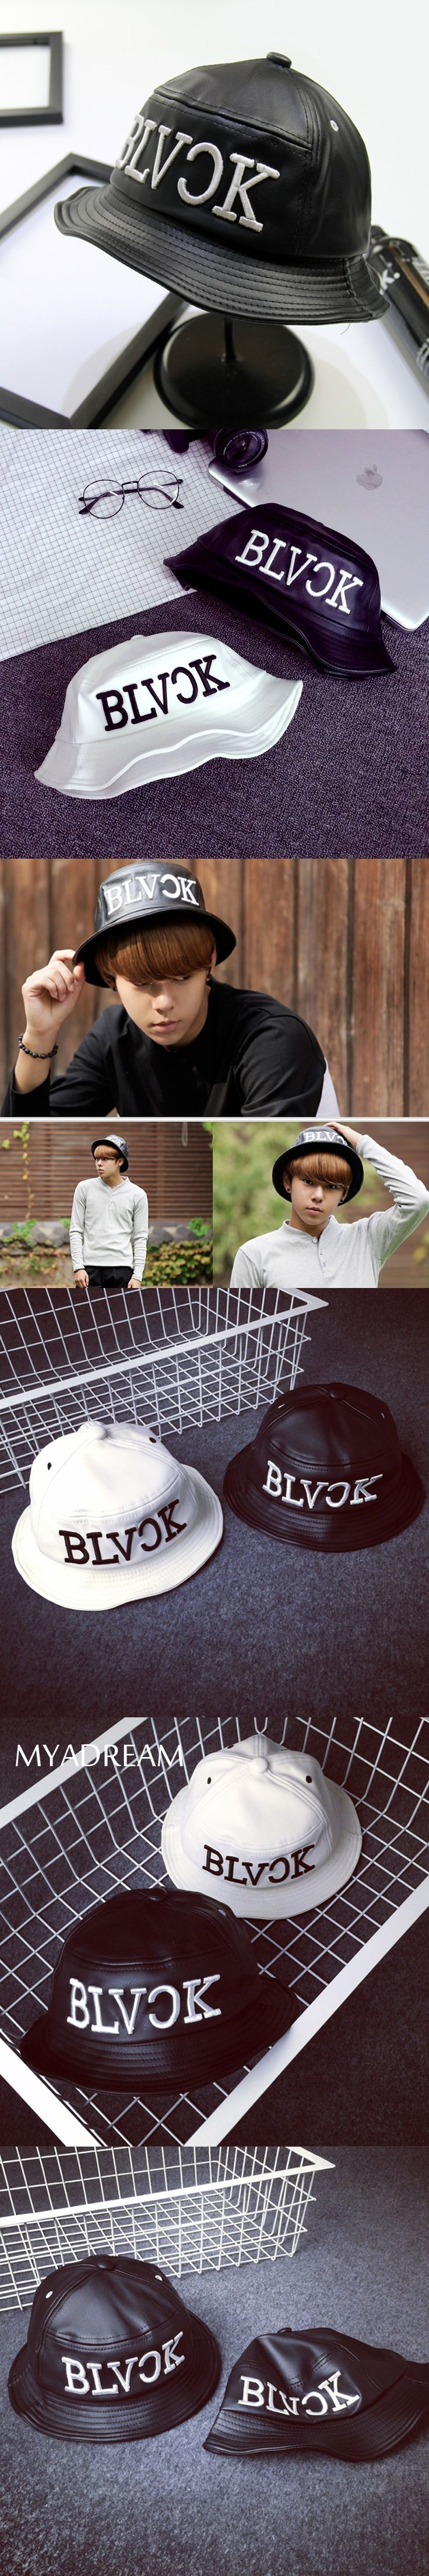 MYADREAM Black White Leather Bucket Hat Hip Hop Letter Embroidery Bape Chapeu Feminino Fishing Hat Couple Bucket Hats for Men